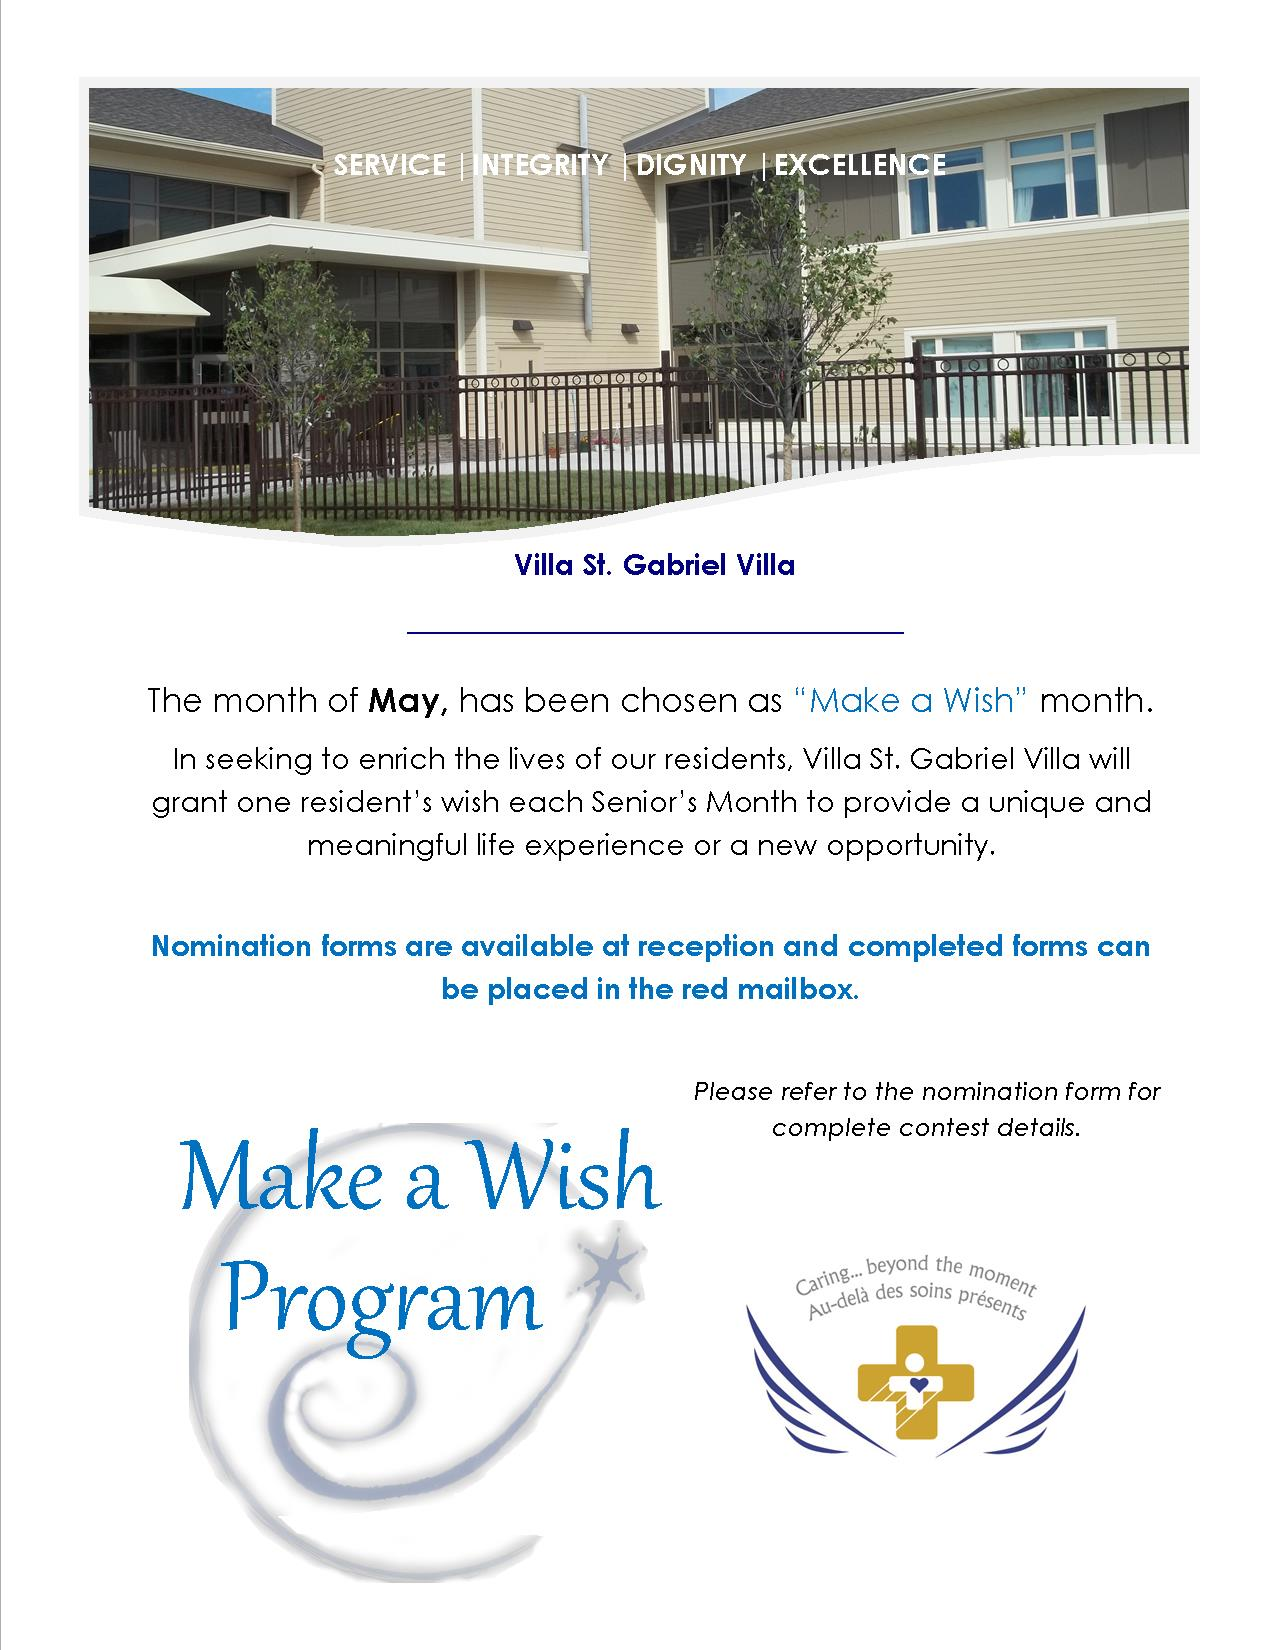 VSGV Make-A-Wish program